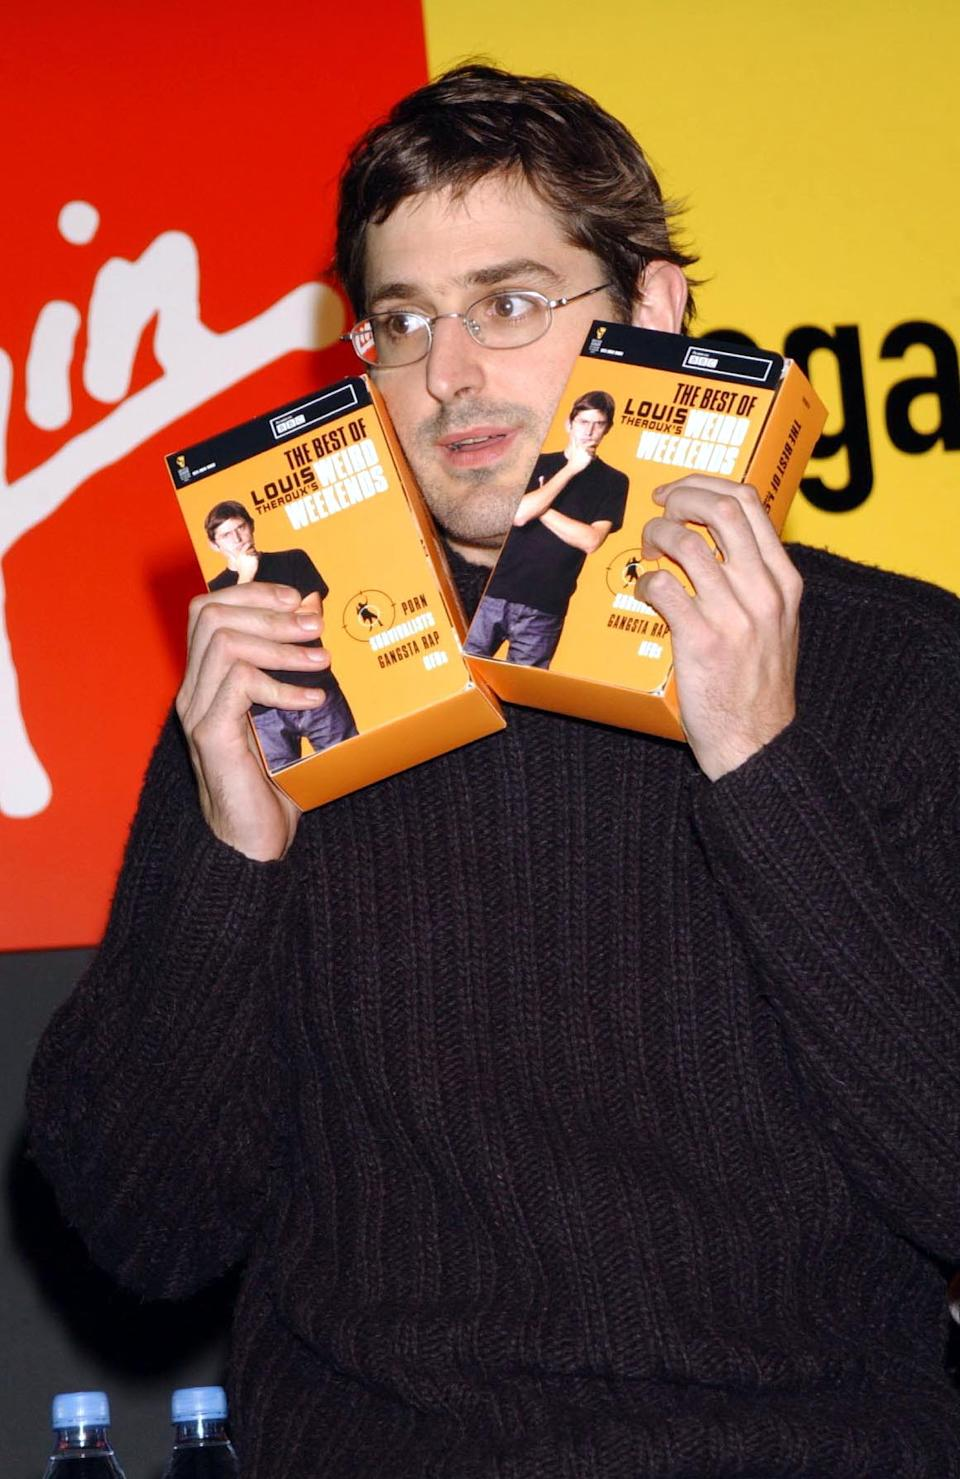 Offbeat TV interviewer Louis Theroux launches the 'Best of Weird Weekends', a collection of the finest moments from his BBC TWO series, at Virgin Megastore in  London's Oxford Street.   (Photo by Yui Mok - PA Images/PA Images via Getty Images)